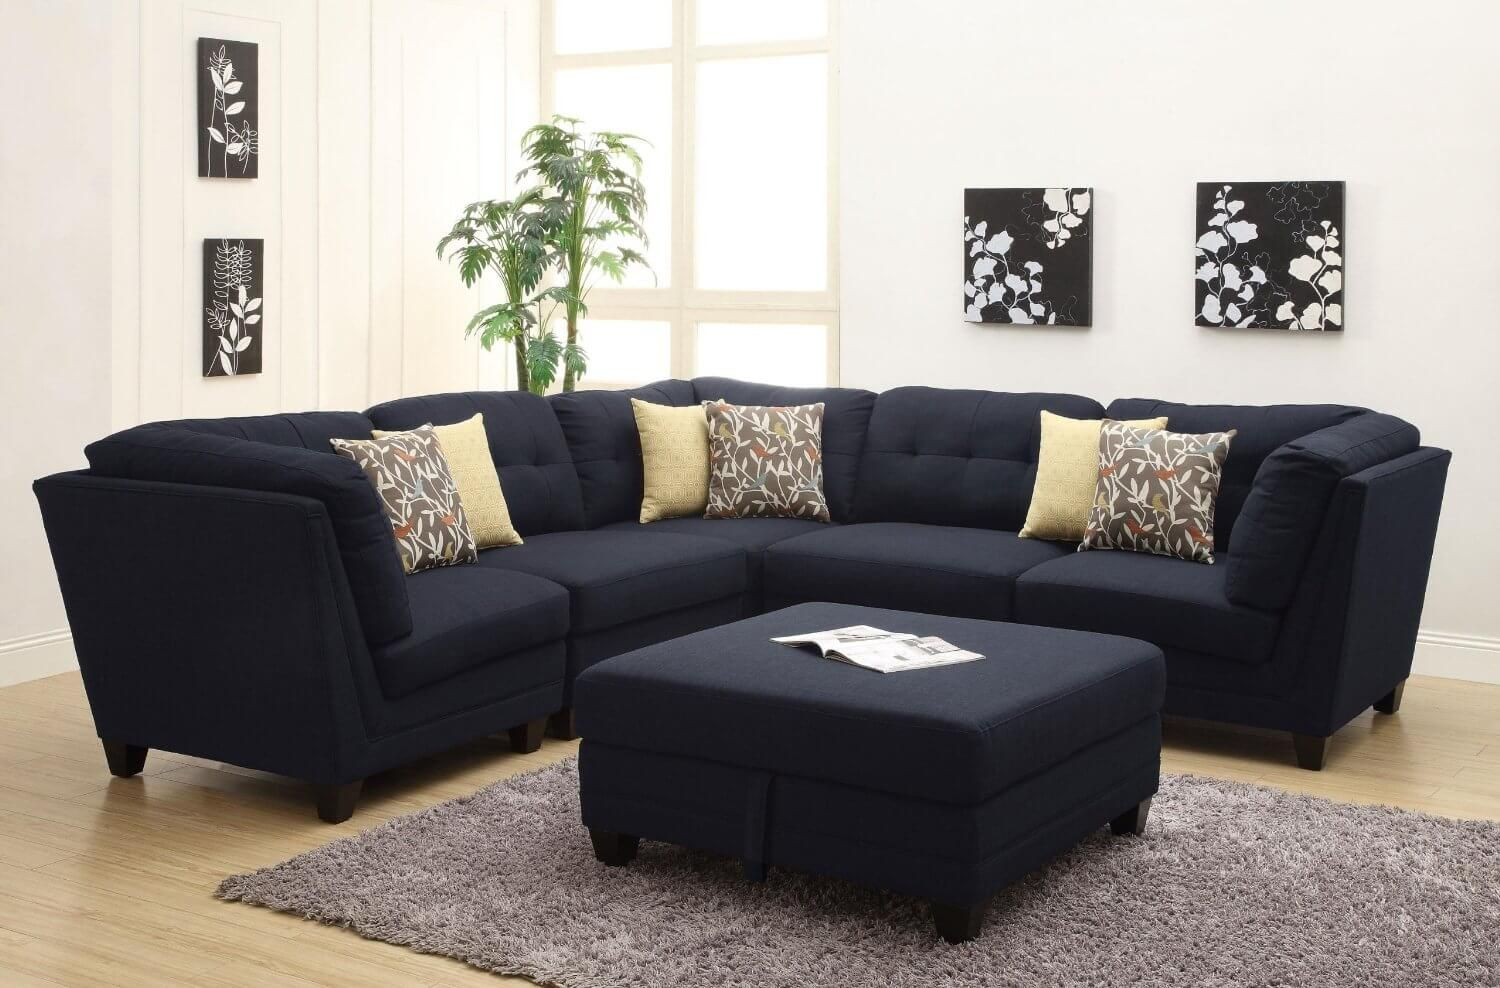 100 Awesome Sectional Sofas Under 1 000 With Images